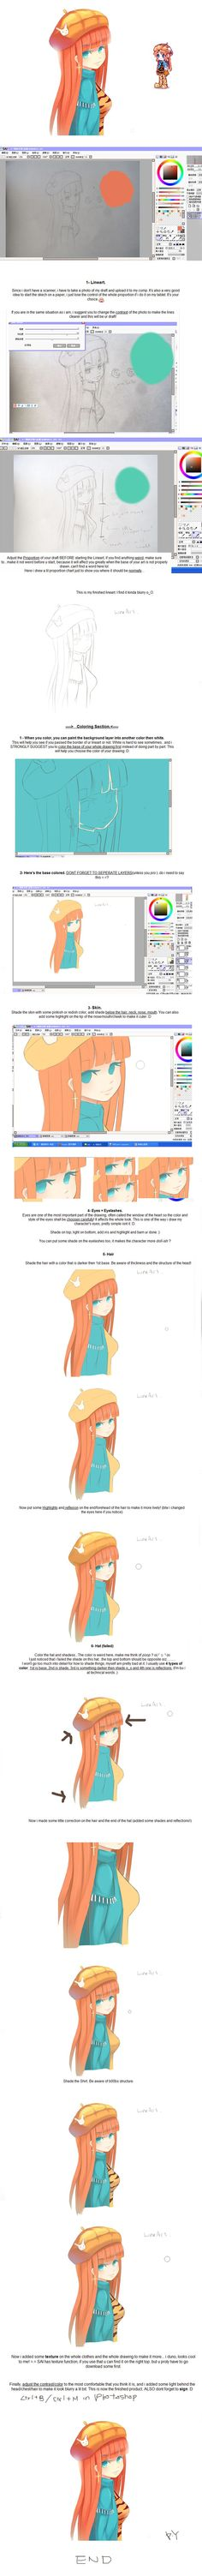 Simple Anime Girl Tutorial by PolkaDotedFlower.deviantart.com on @deviantART ✤ || CHARACTER DESIGN REFERENCES | キャラクターデザイン | çizgi film • Find more at https://www.facebook.com/CharacterDesignReferences & http://www.pinterest.com/characterdesigh if you're looking for: #color #theory #contrast #manga #soft #cell #shading #animation #how #to #draw #paint #drawing #tutorial #lesson #balance #sketch #colors #digital #painting #process #line #art #tips #coloring || ✤